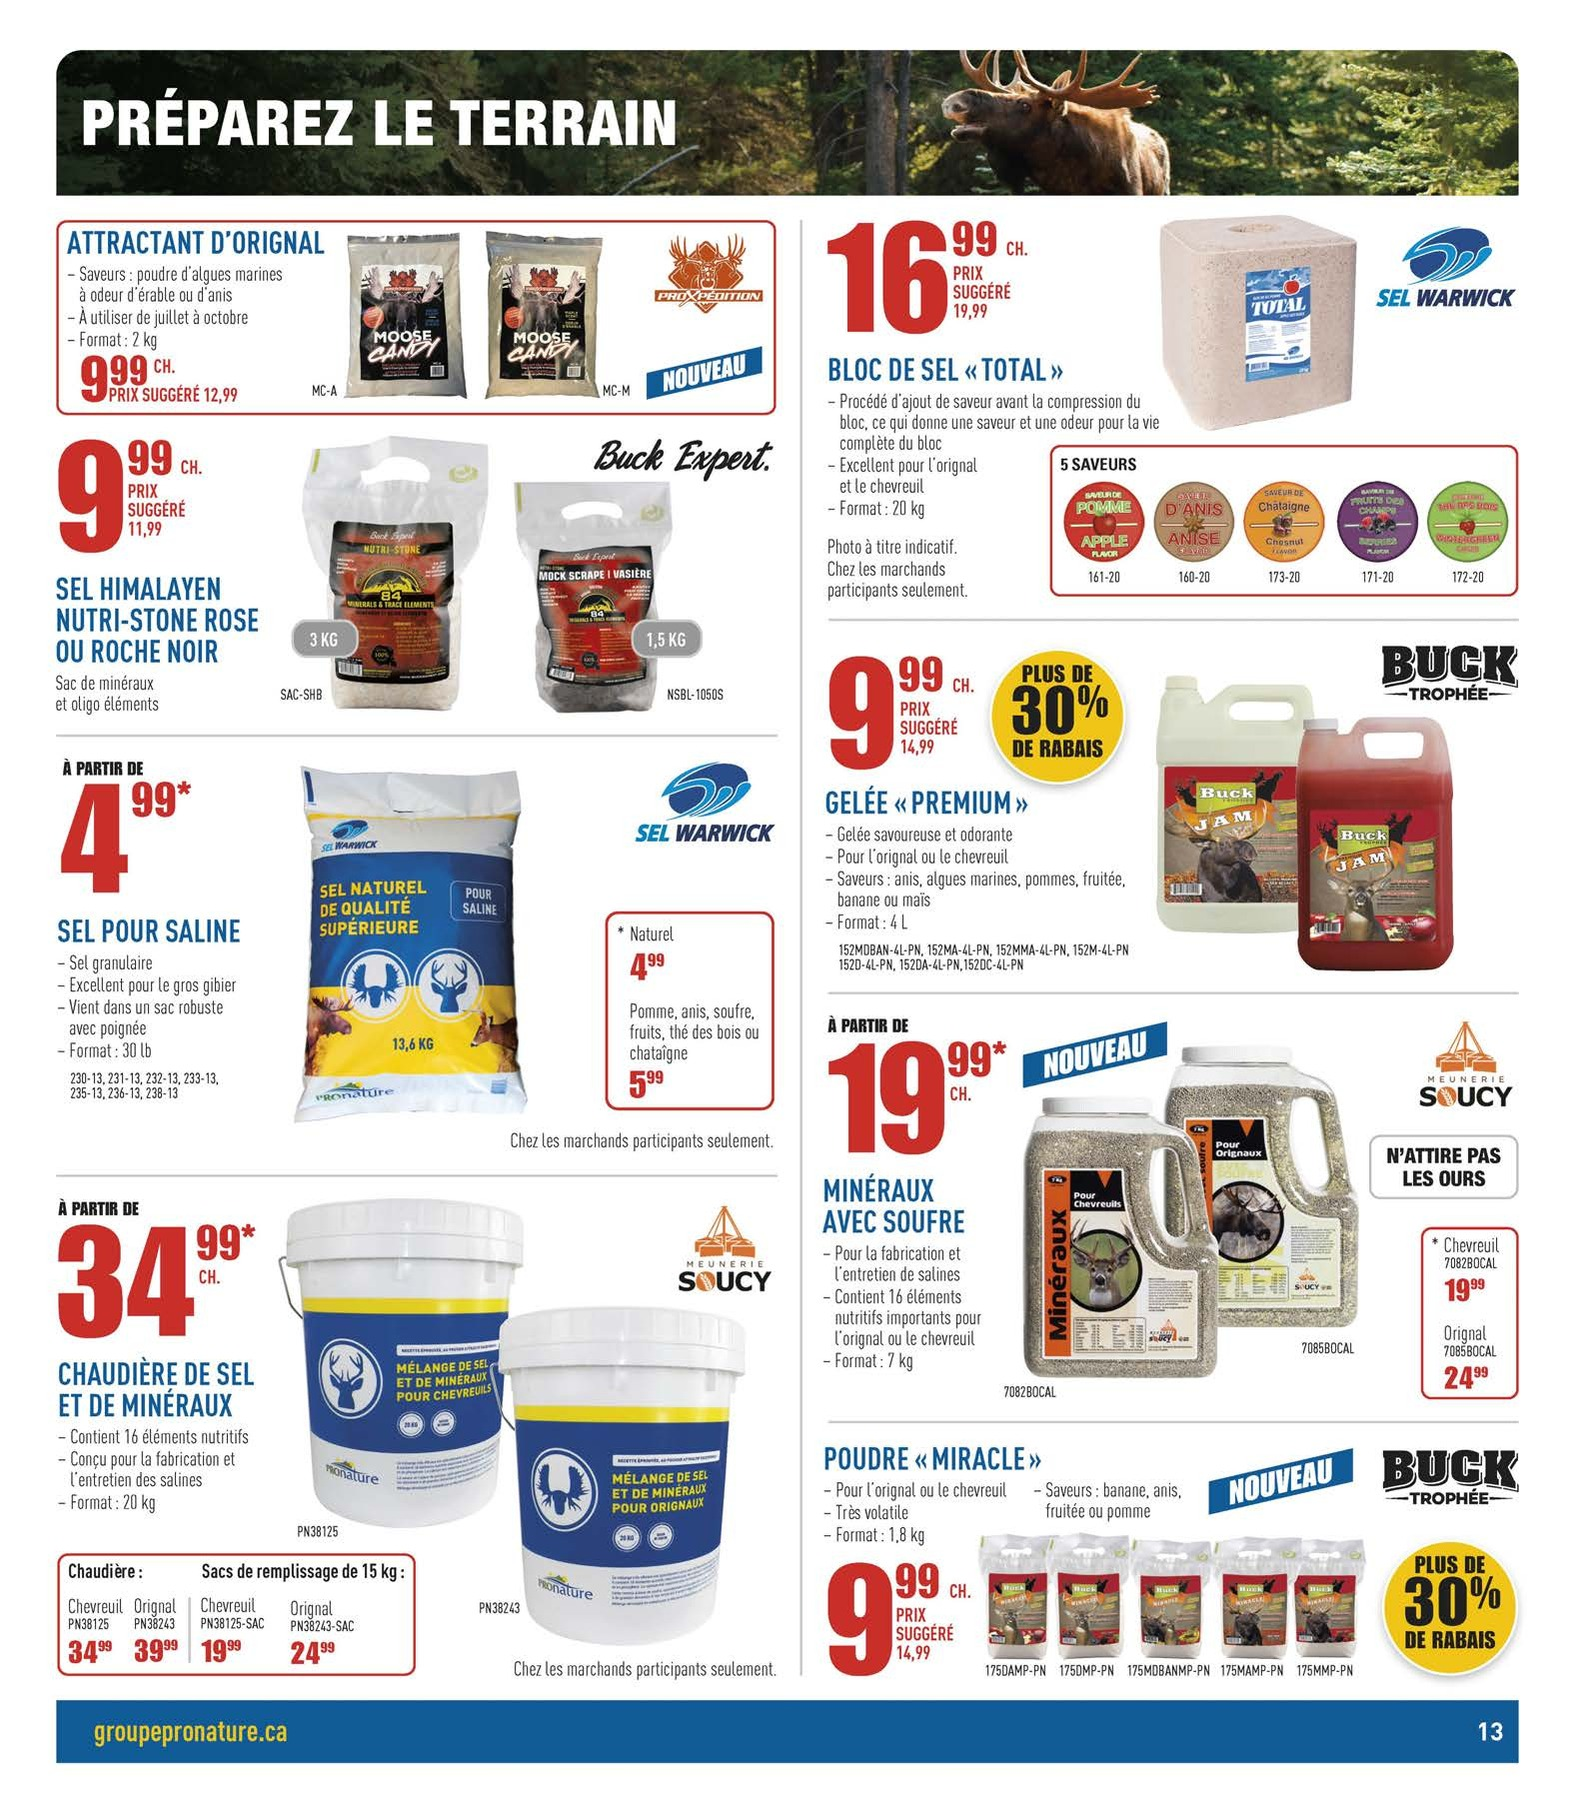 Flyer 210516 788 page 13 fr 1620160186